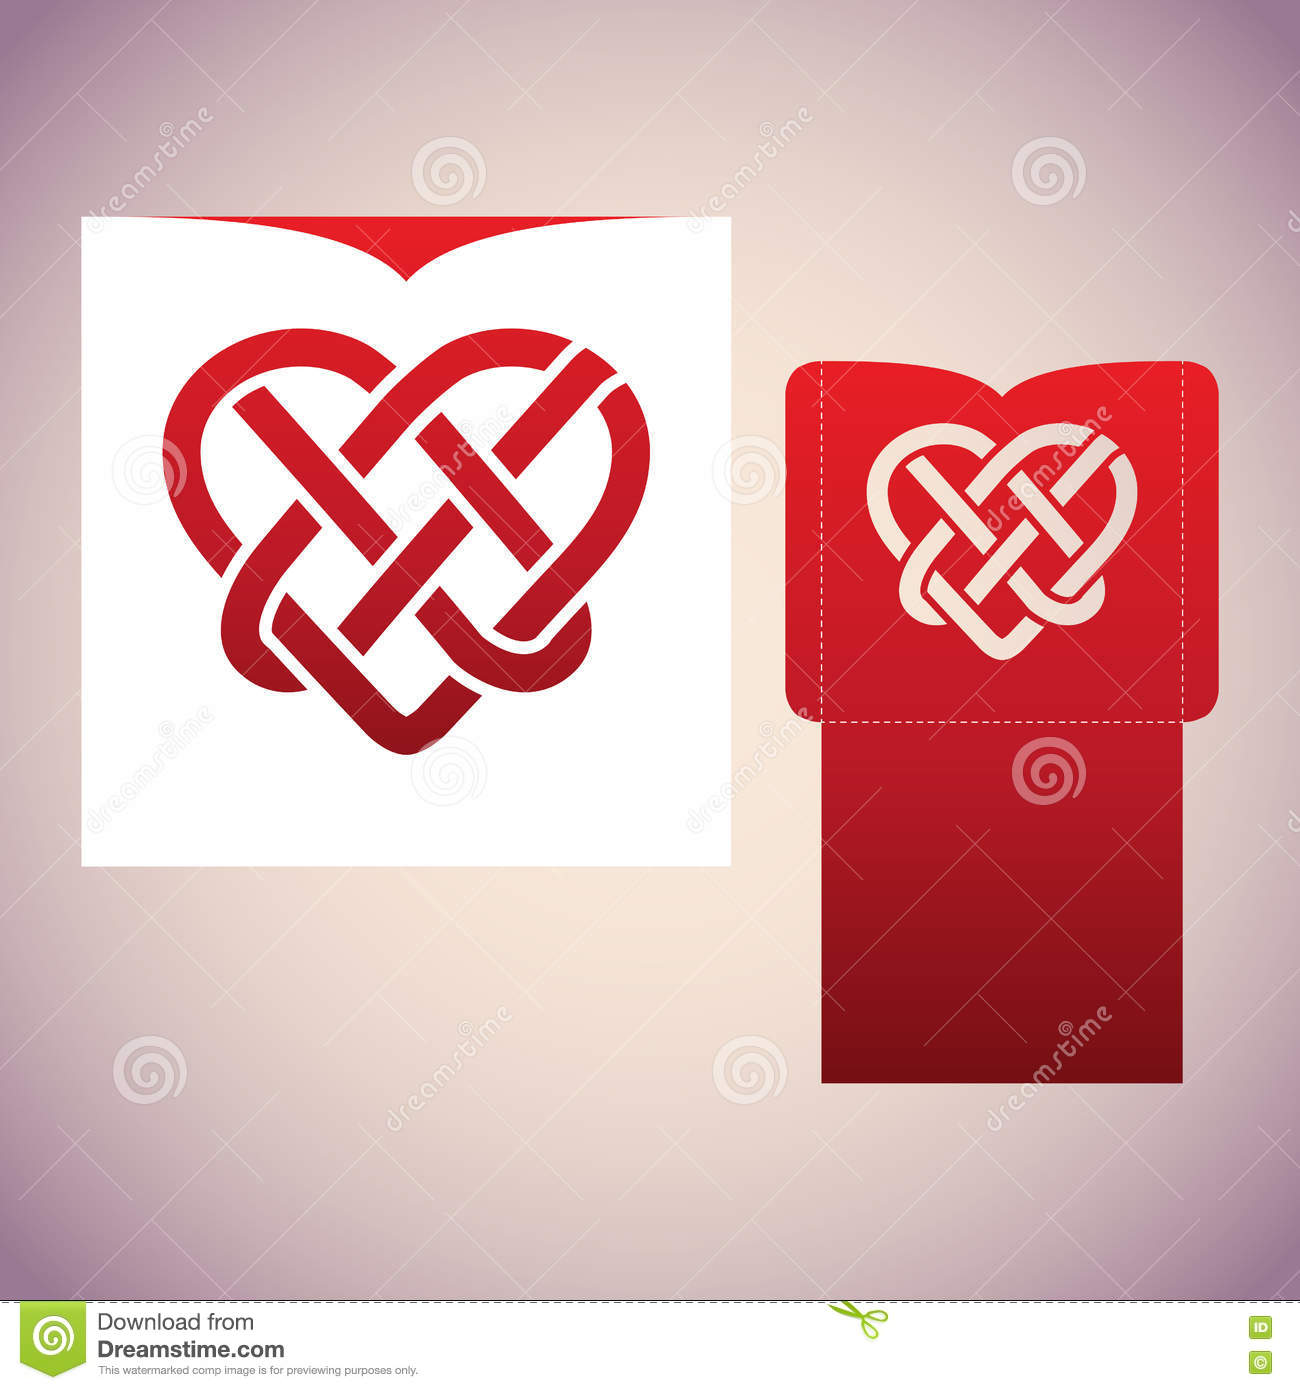 Celtic Knot In The Form Of Heart. Laser Cutting Template. Stock ...